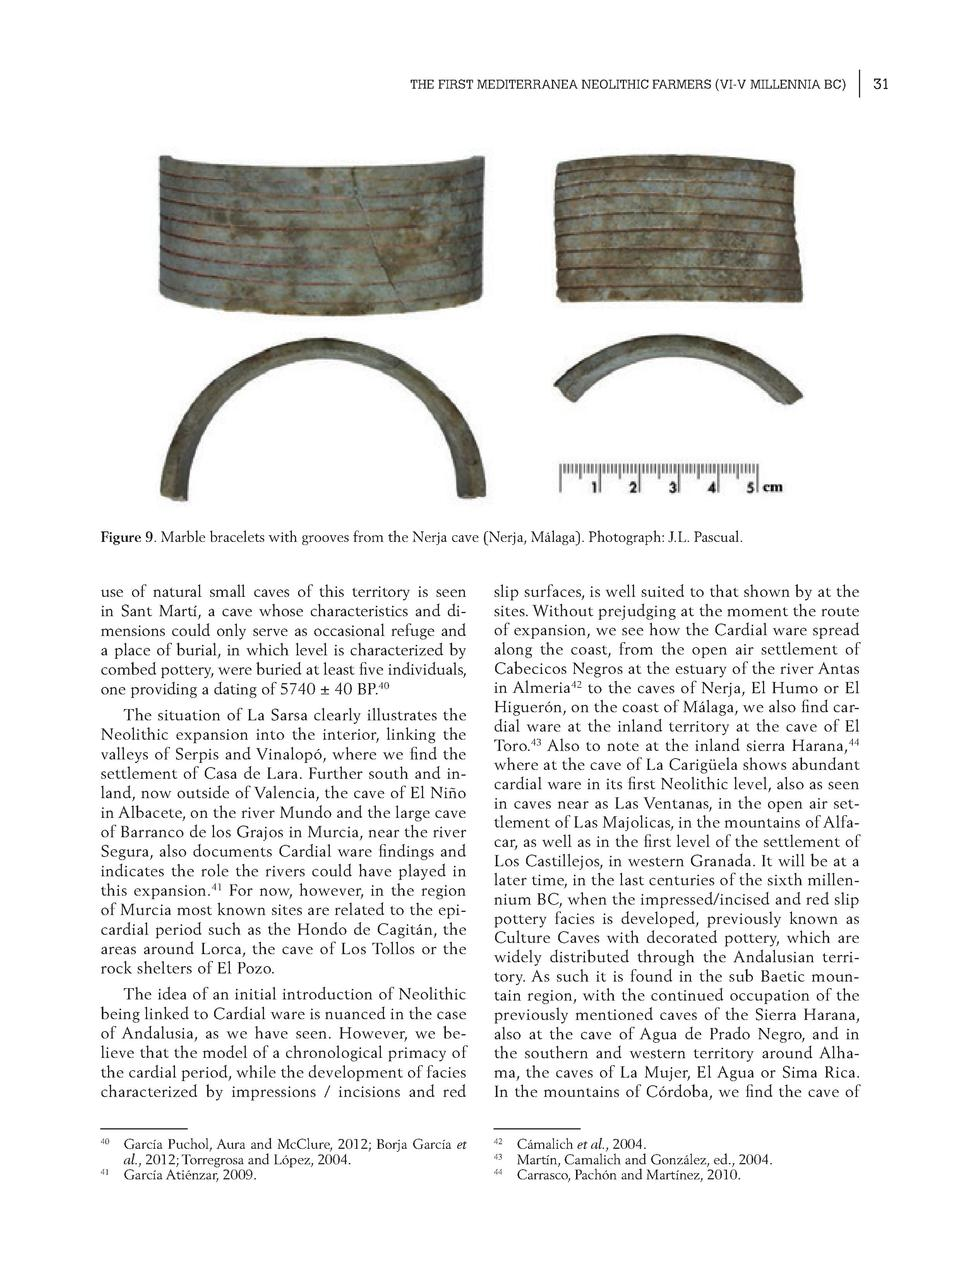 THE FIRST MEDITERRANEA NEOLITHIC FARMERS  VI-V MILLENNIA BC   Figure 9. Marble bracelets with grooves from the Nerja cave ...